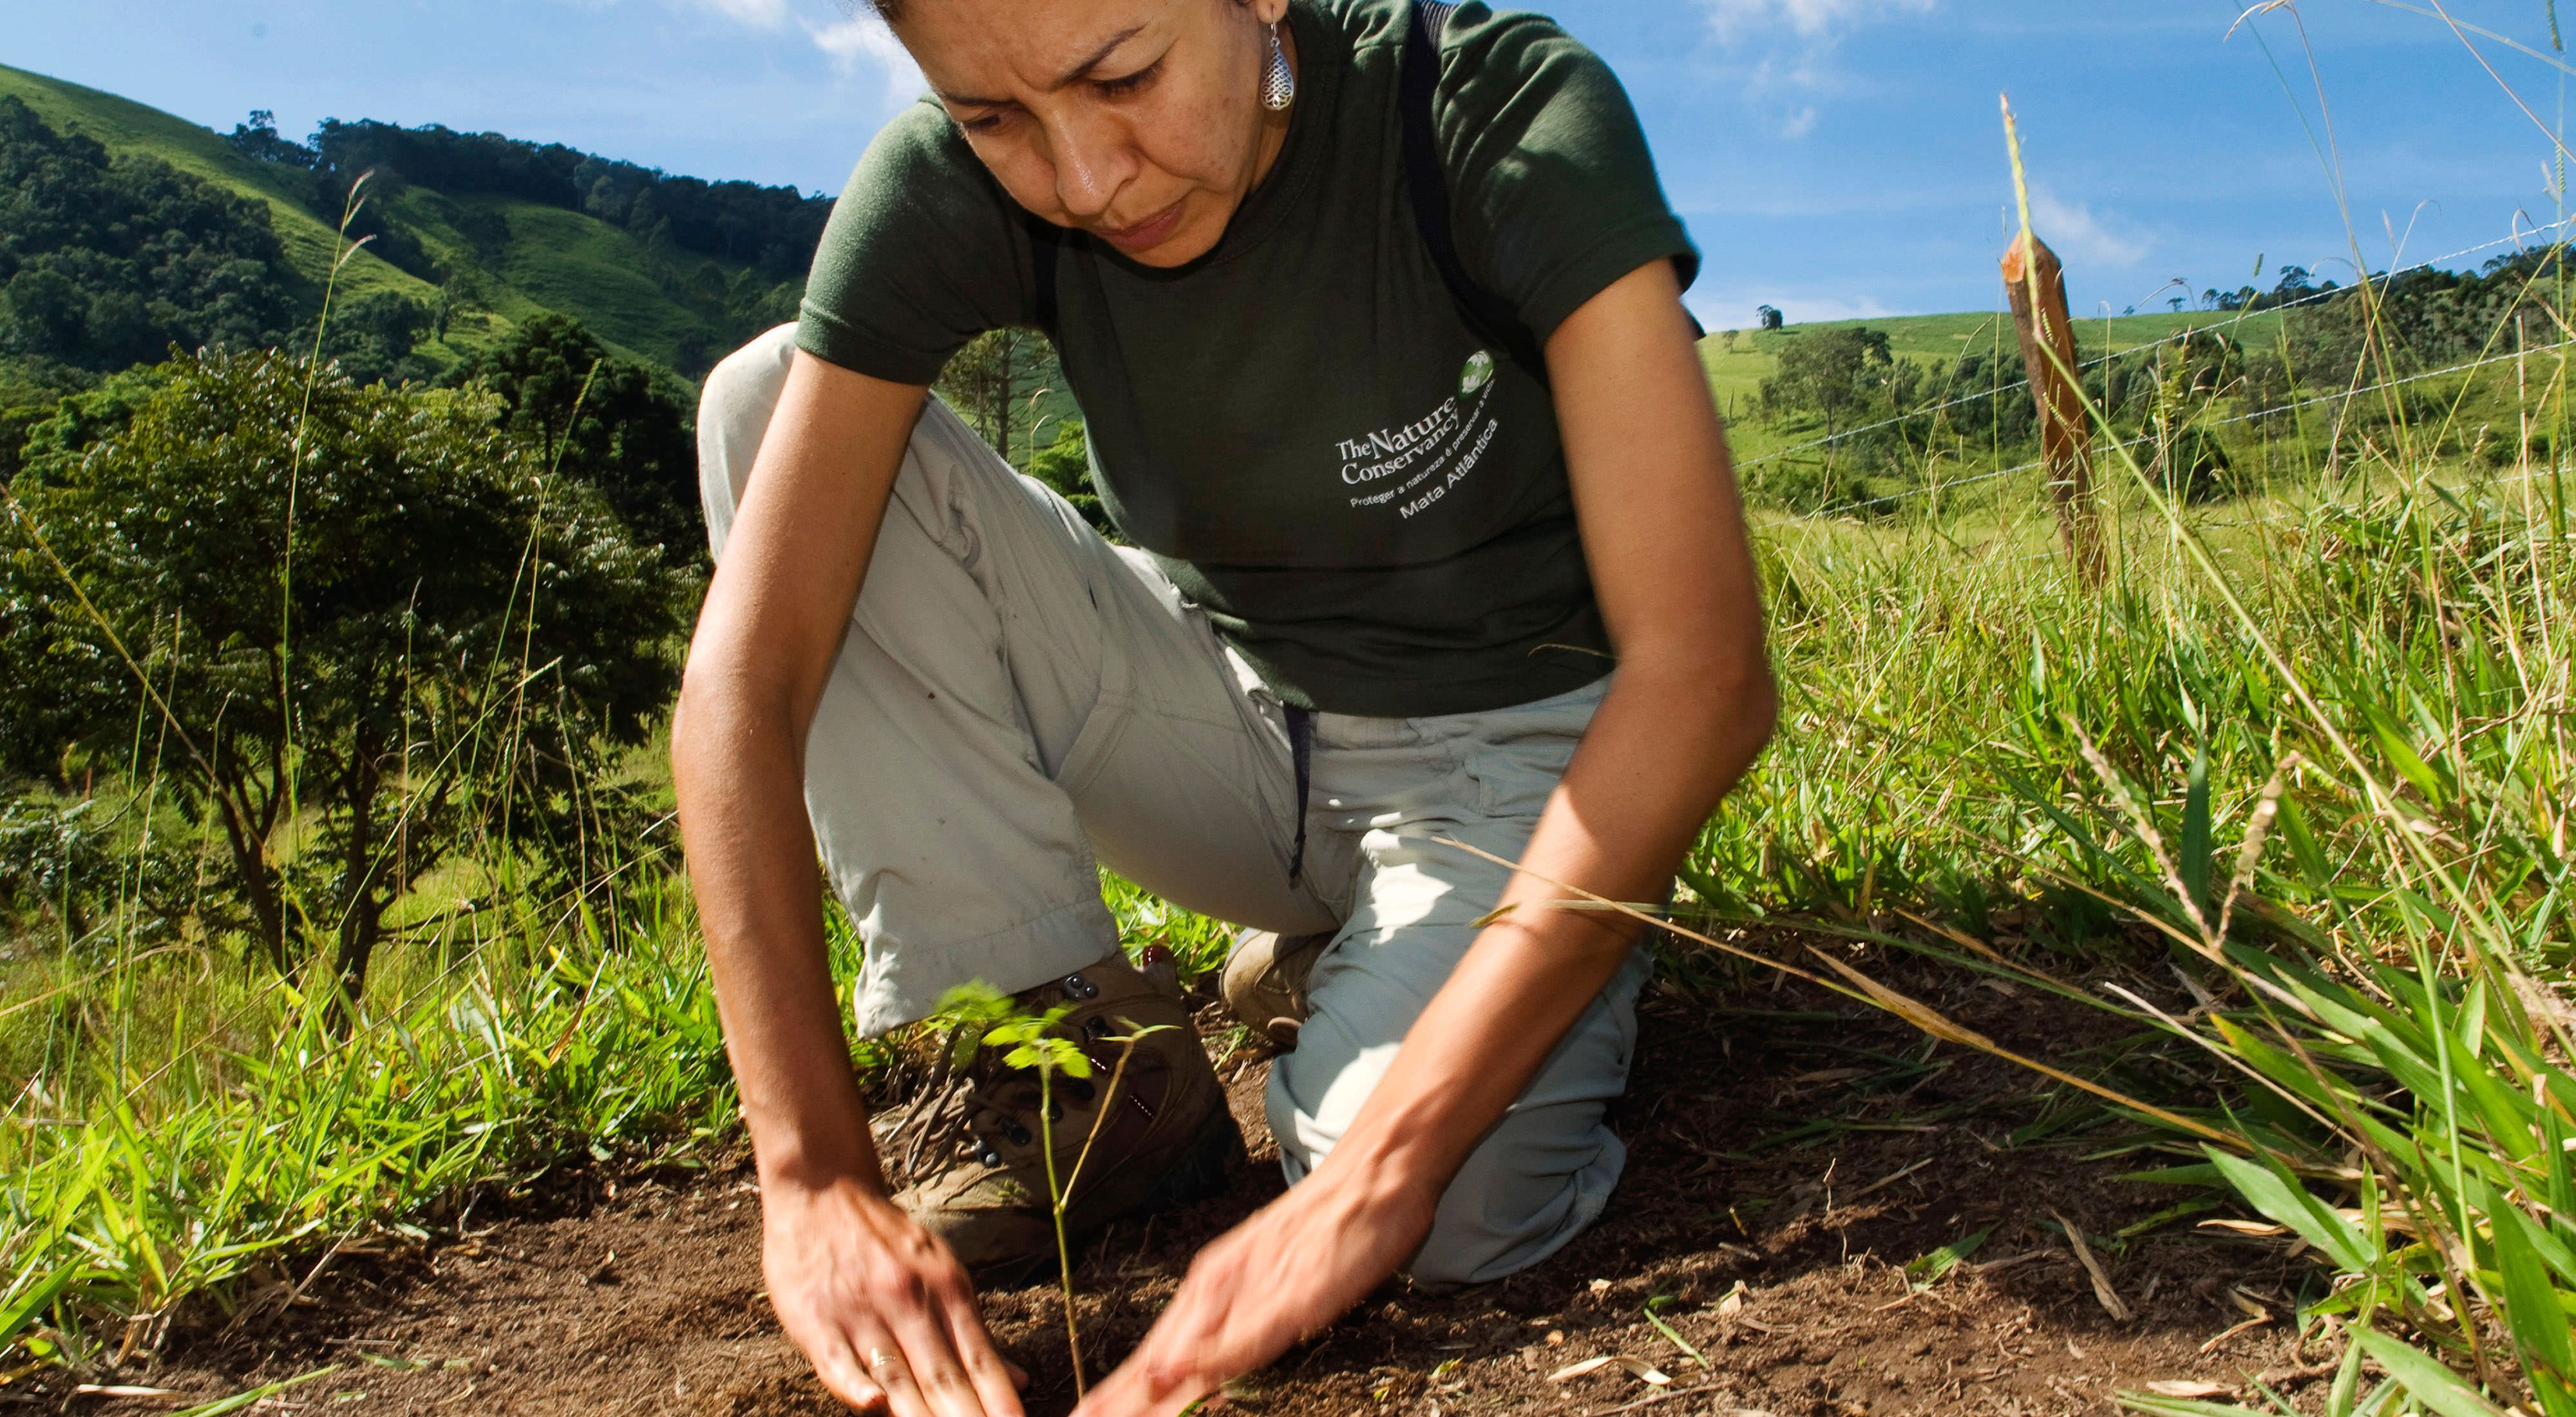 Claudia Picone, a staff member with The Nature Conservancy, plants seedlings in the Extrema municipality of Brazil. The Nature ConservancyÕs Atlantic Forest program began a Water Producer Program to compensate landowners who protect and reforest